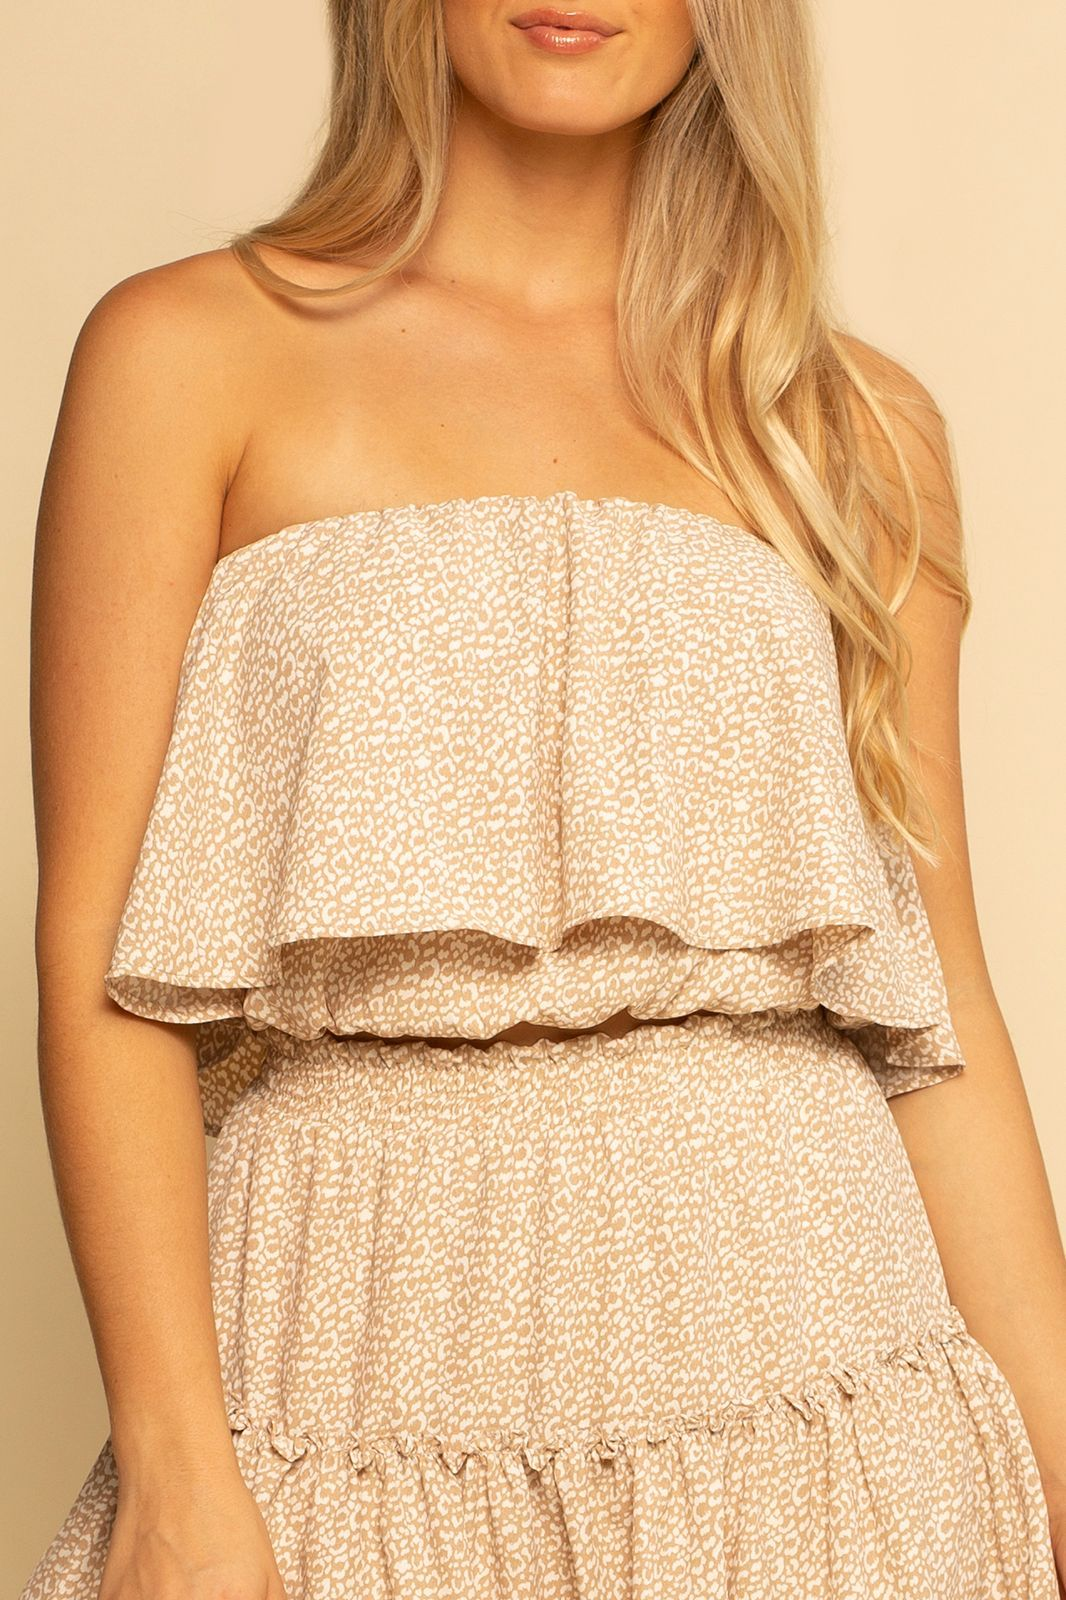 Huntington Layered Top - Nude Leopard - Shore